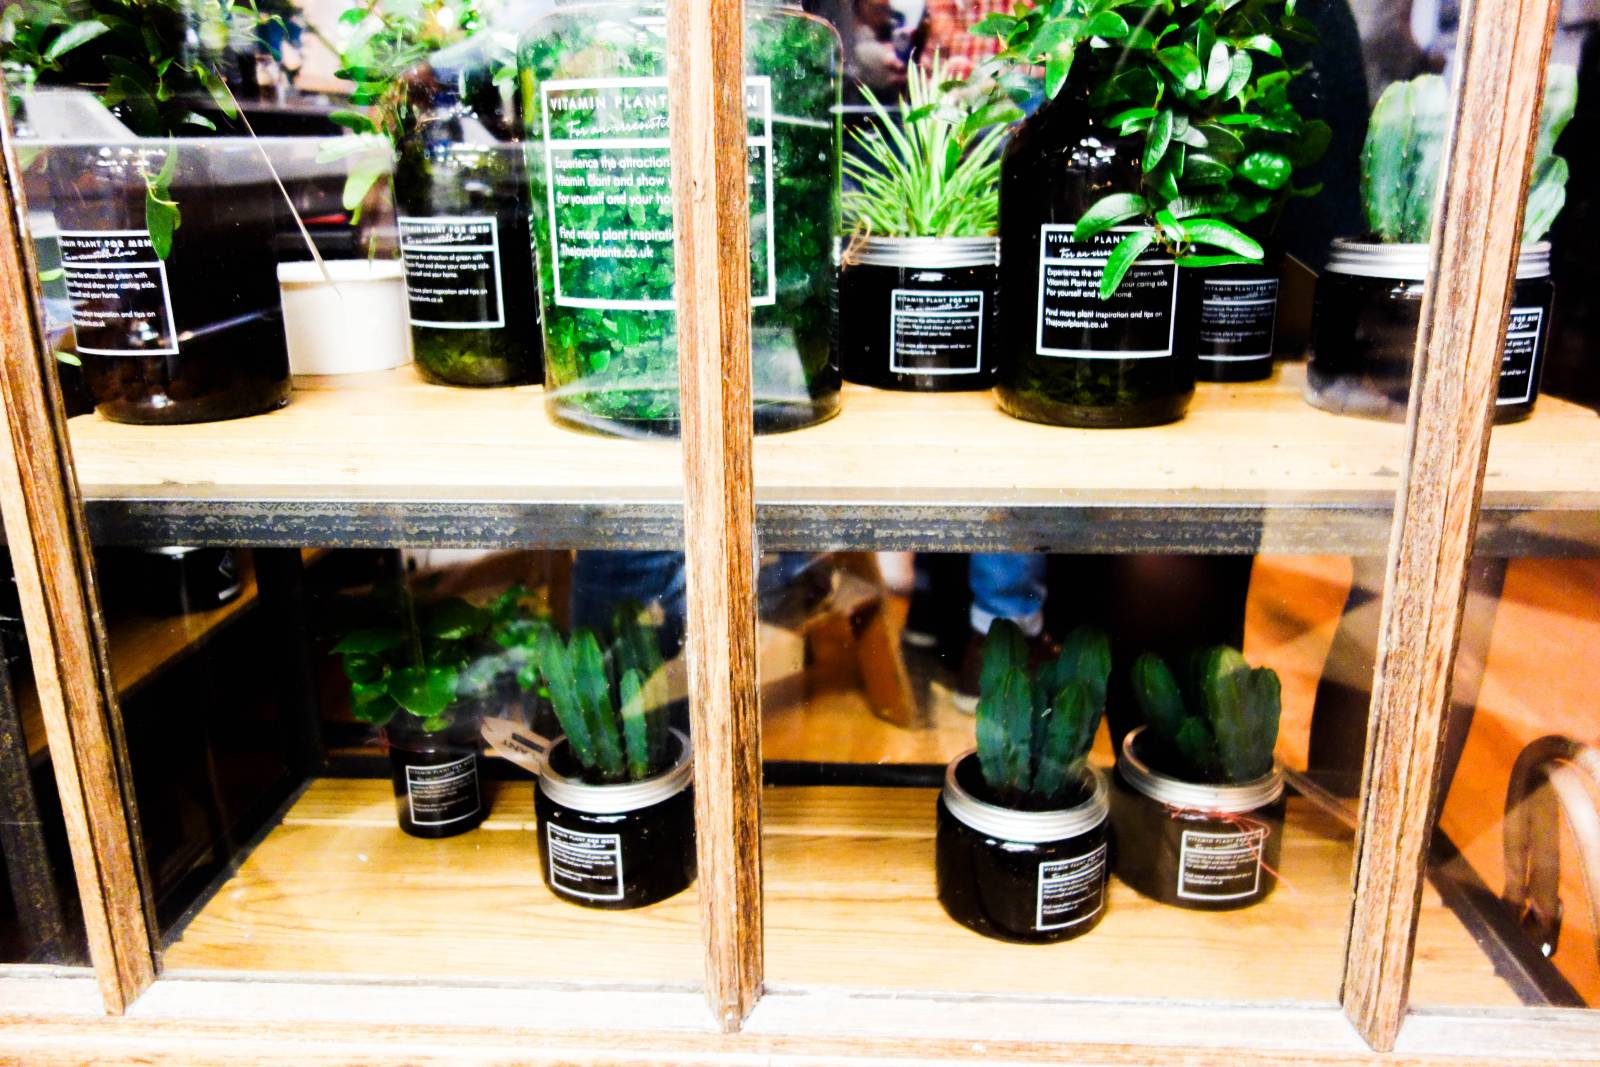 It Was An Interesting Take On Alternative Home Decor And I Can See Why They Re Trying To Expand Their Market The Concept Men Who Have Plants In Their Home